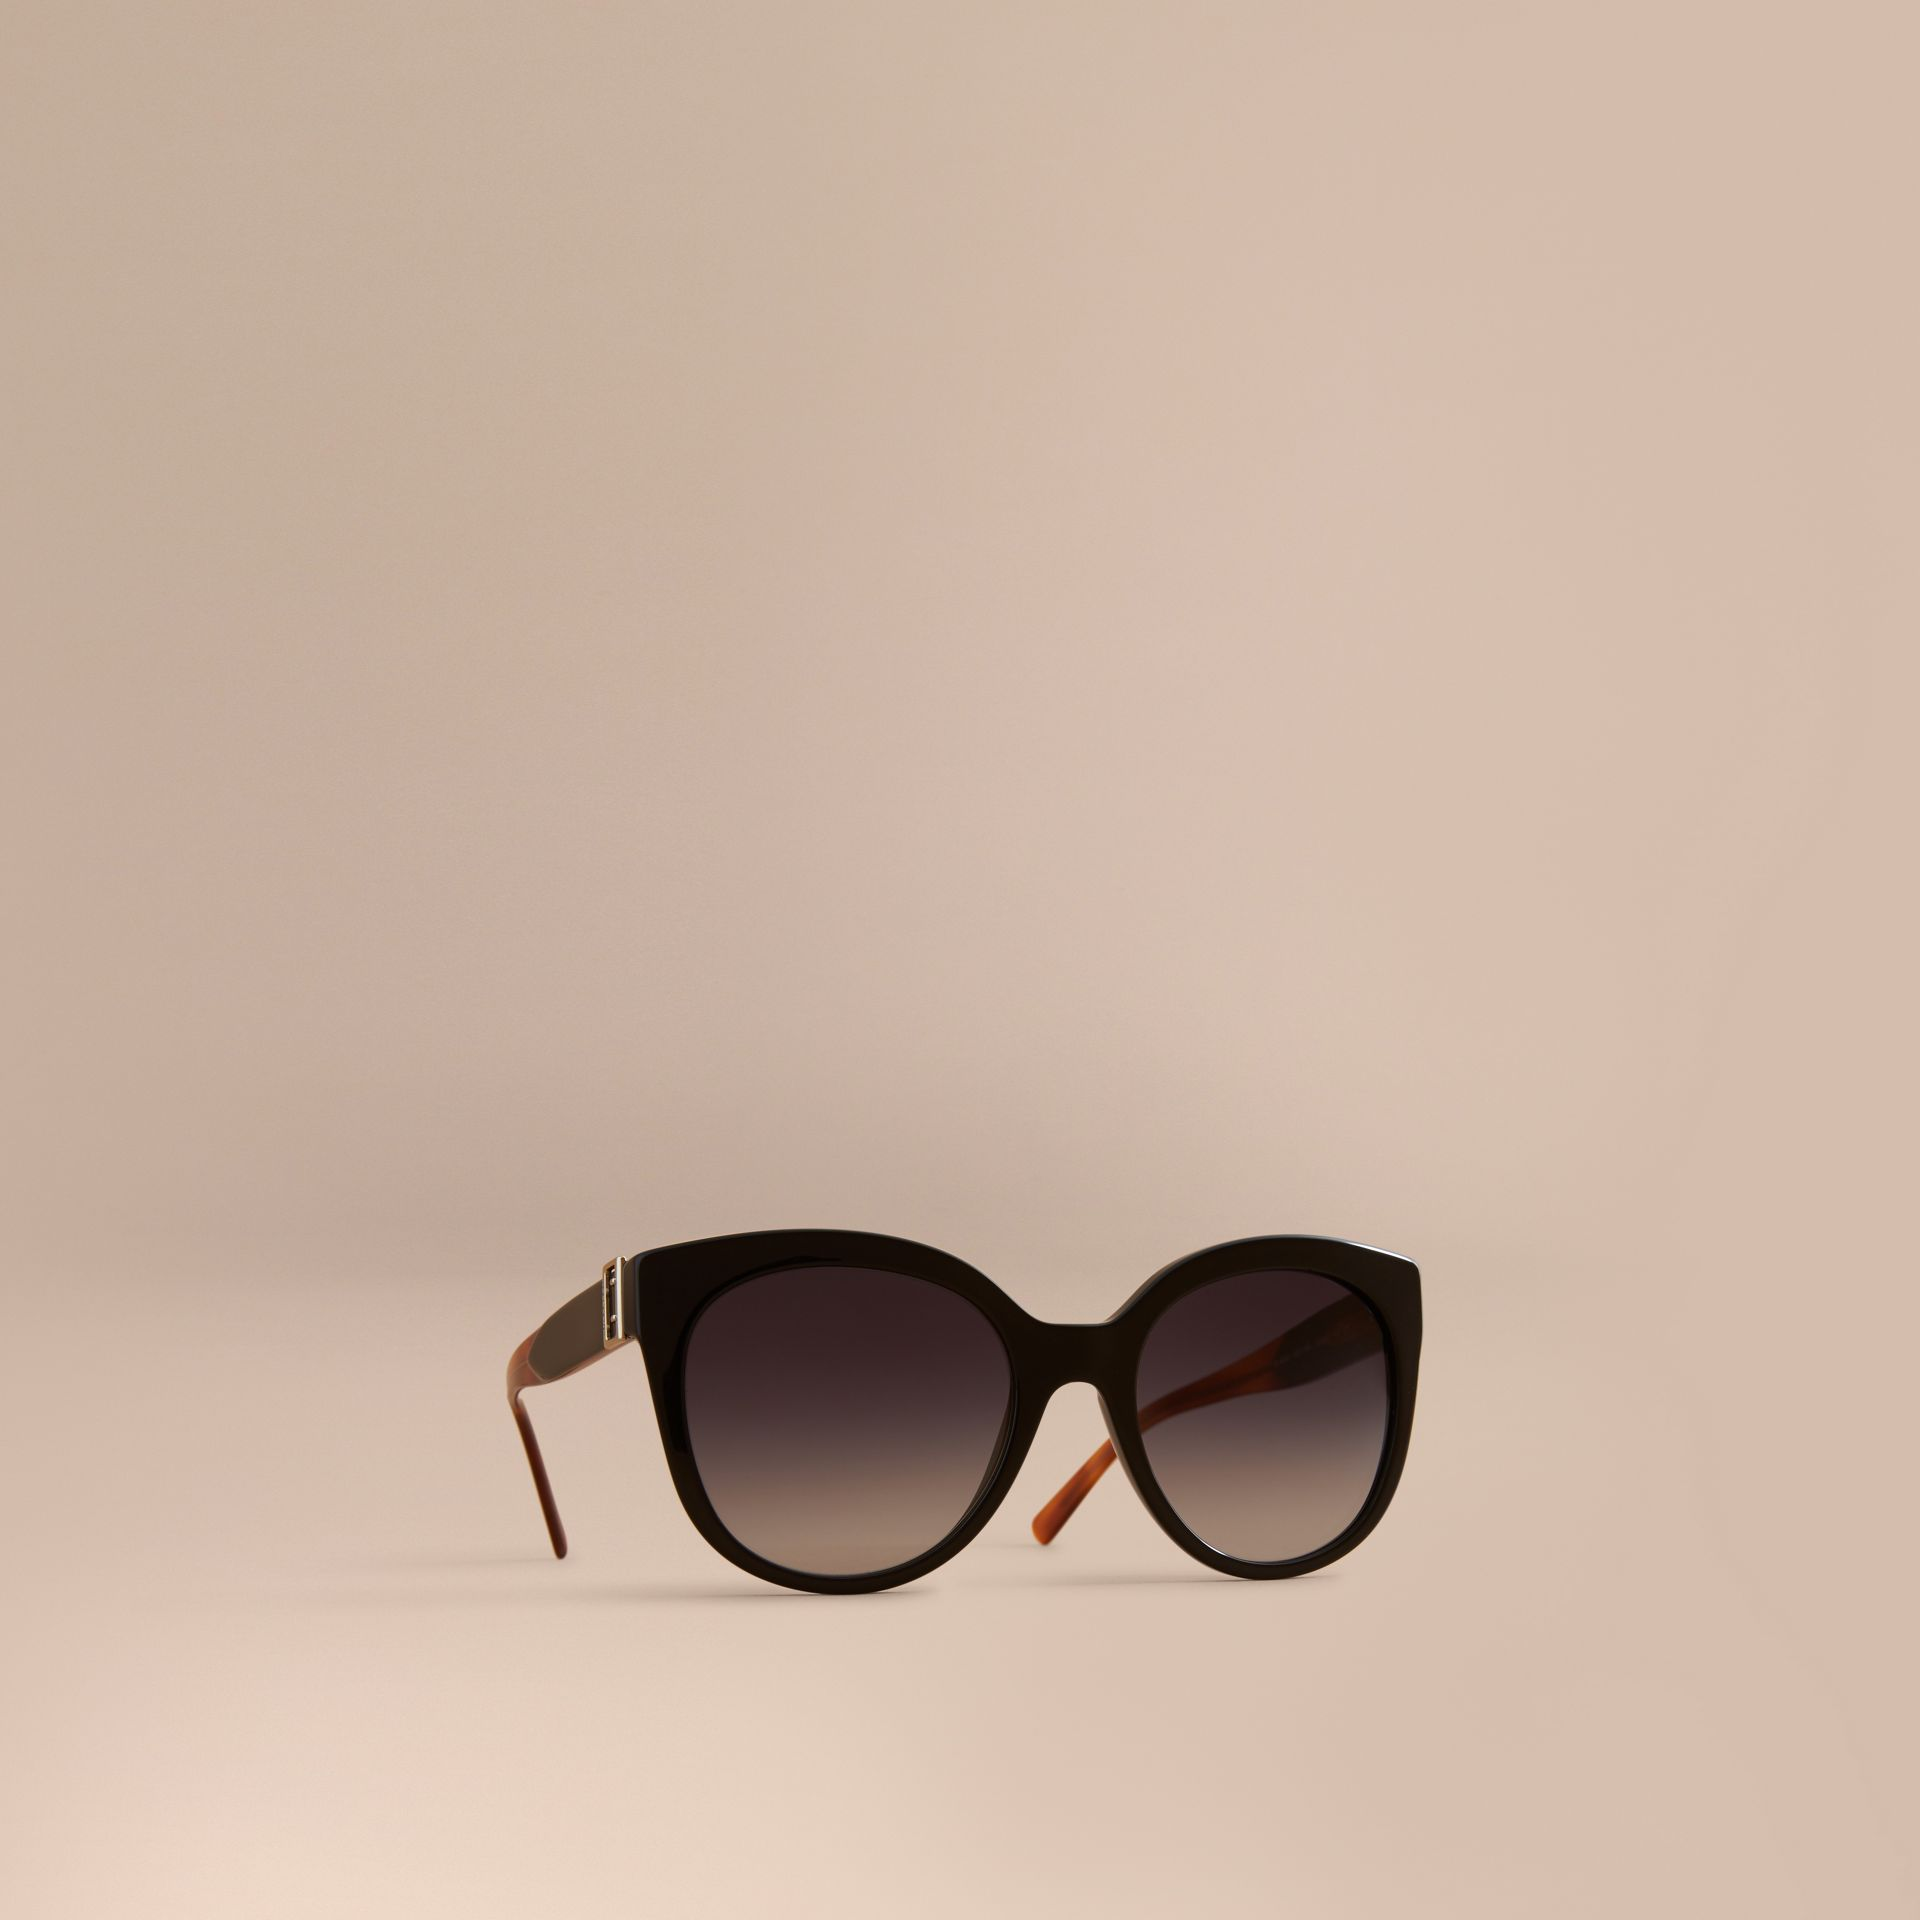 Buckle Detail Cat-eye Frame Sunglasses in Black - Women | Burberry United Kingdom - gallery image 0